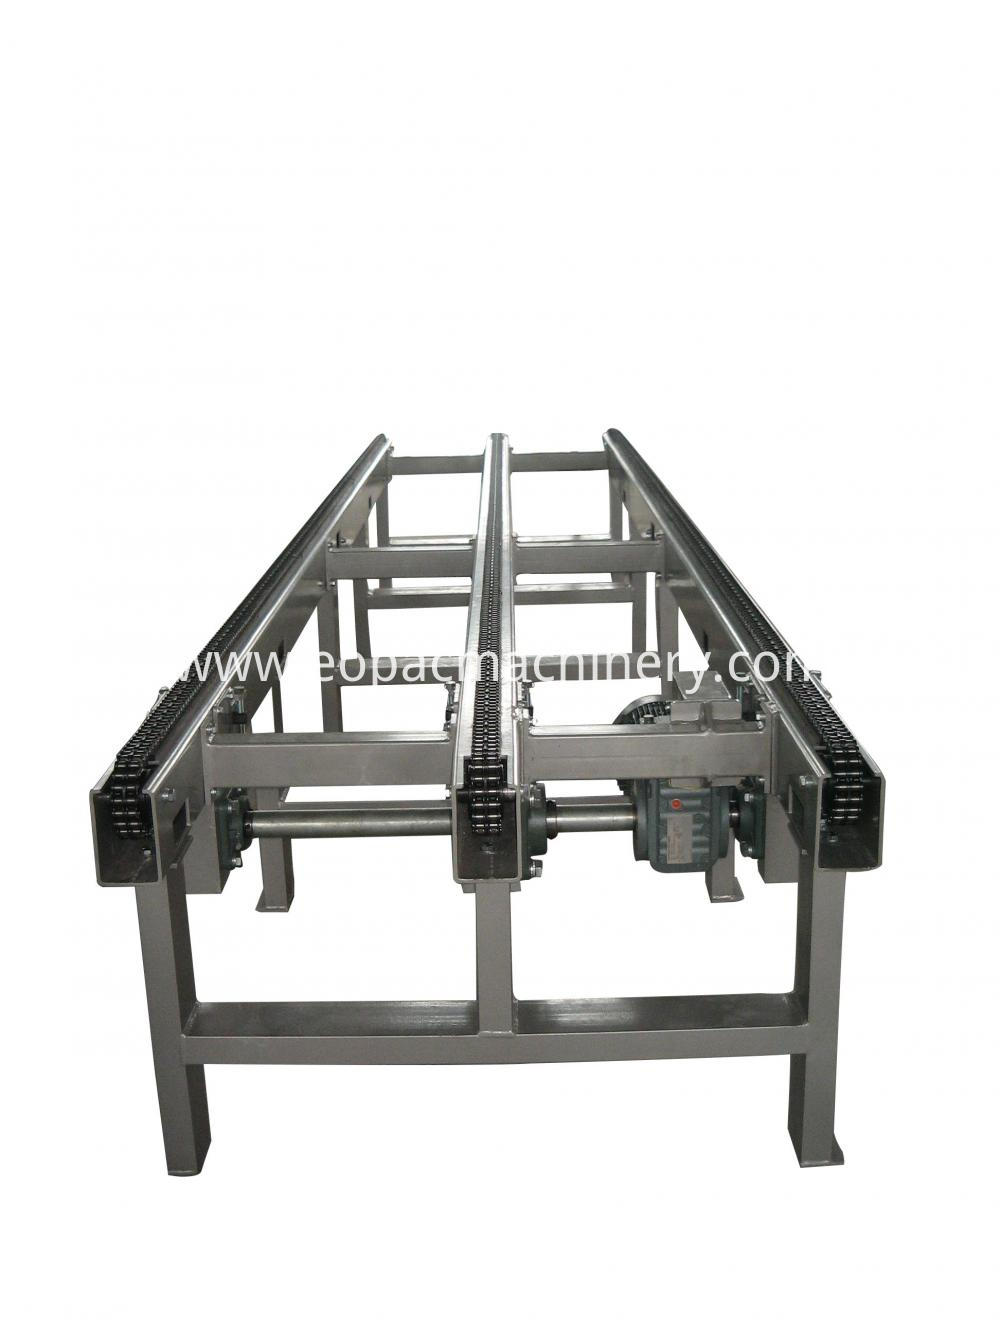 Chain Conveyor Pallet Handling System